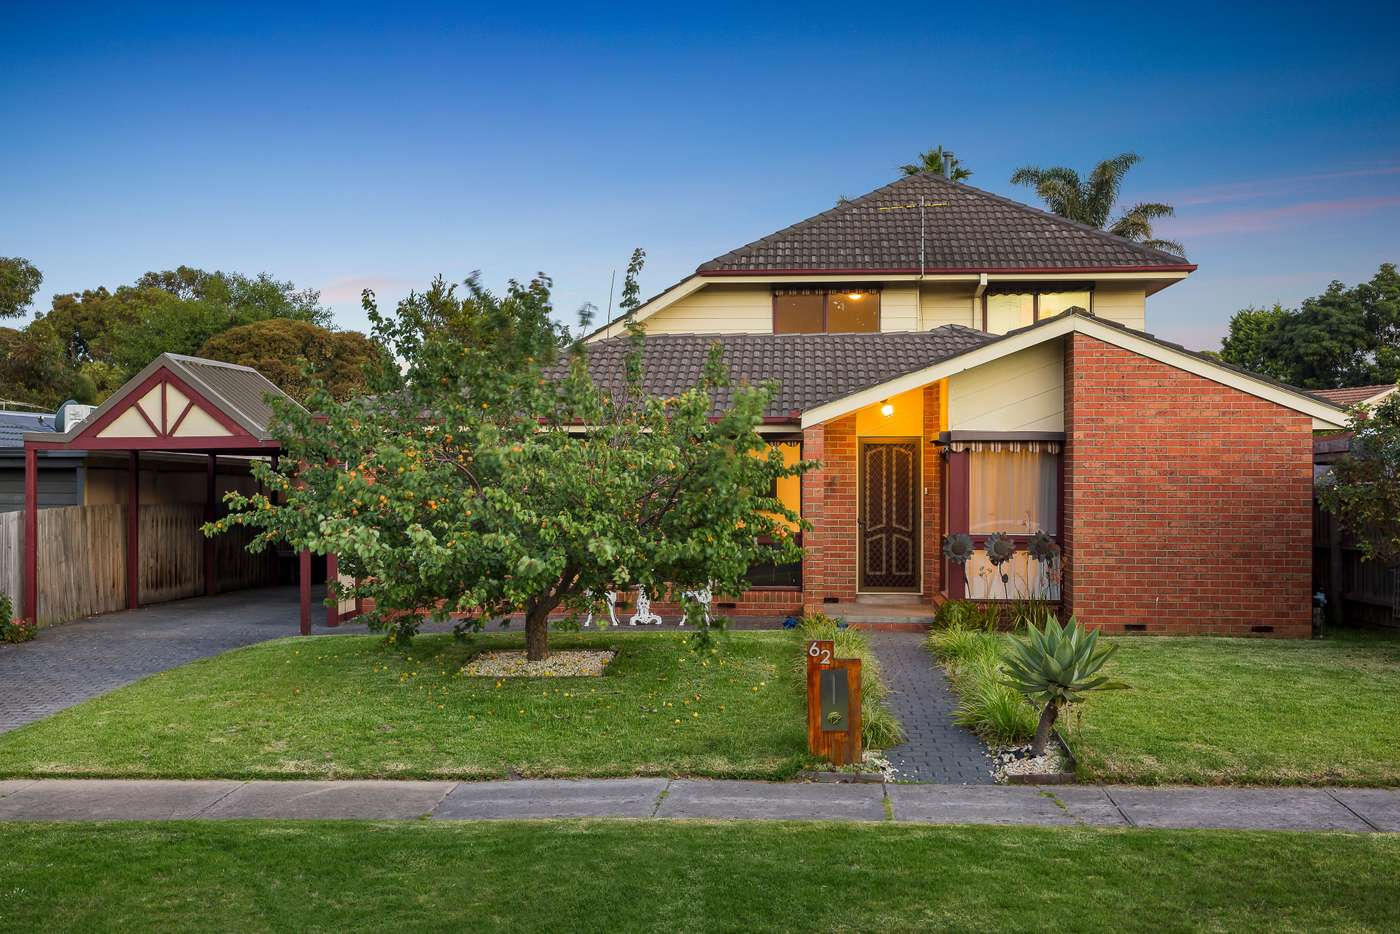 Main view of Homely house listing, 62 Raphael Crescent, Frankston VIC 3199